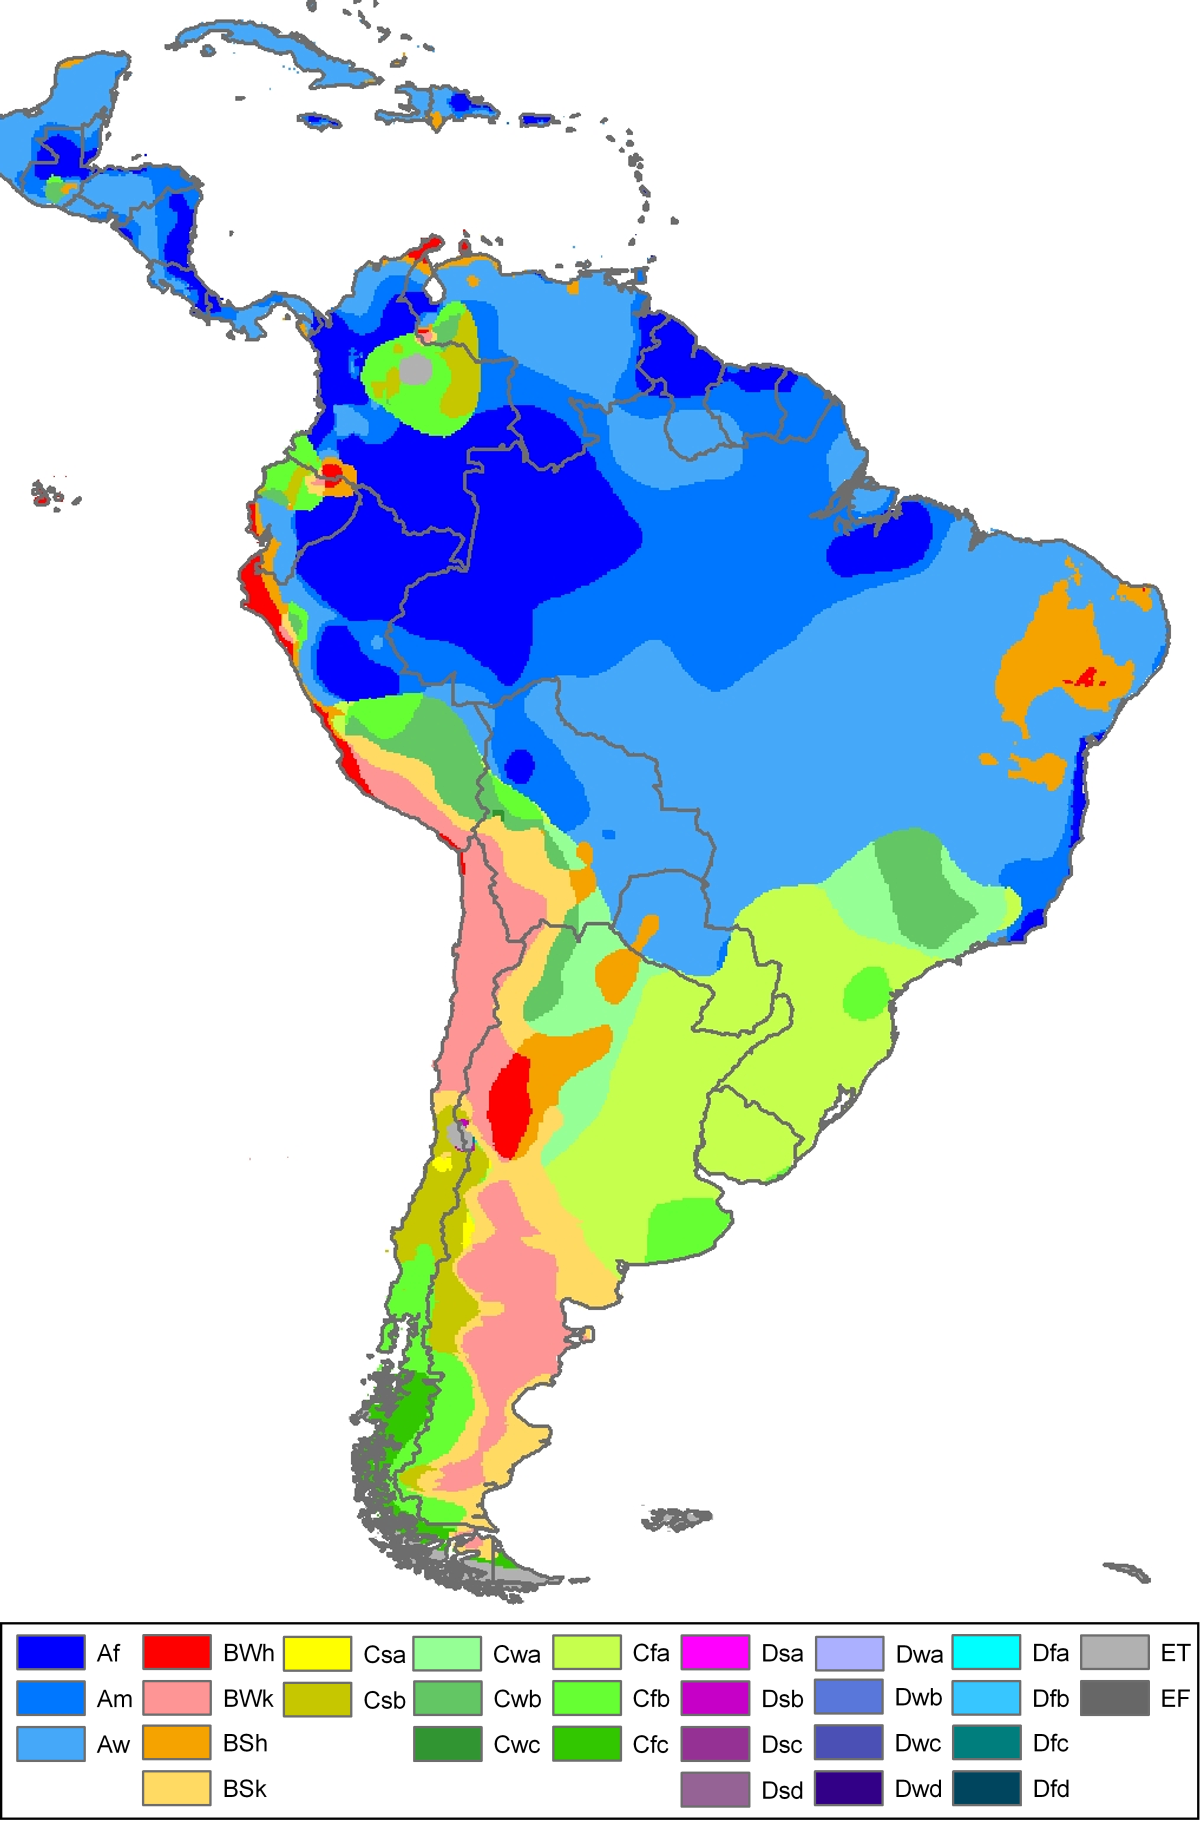 köppen climate classification for south america